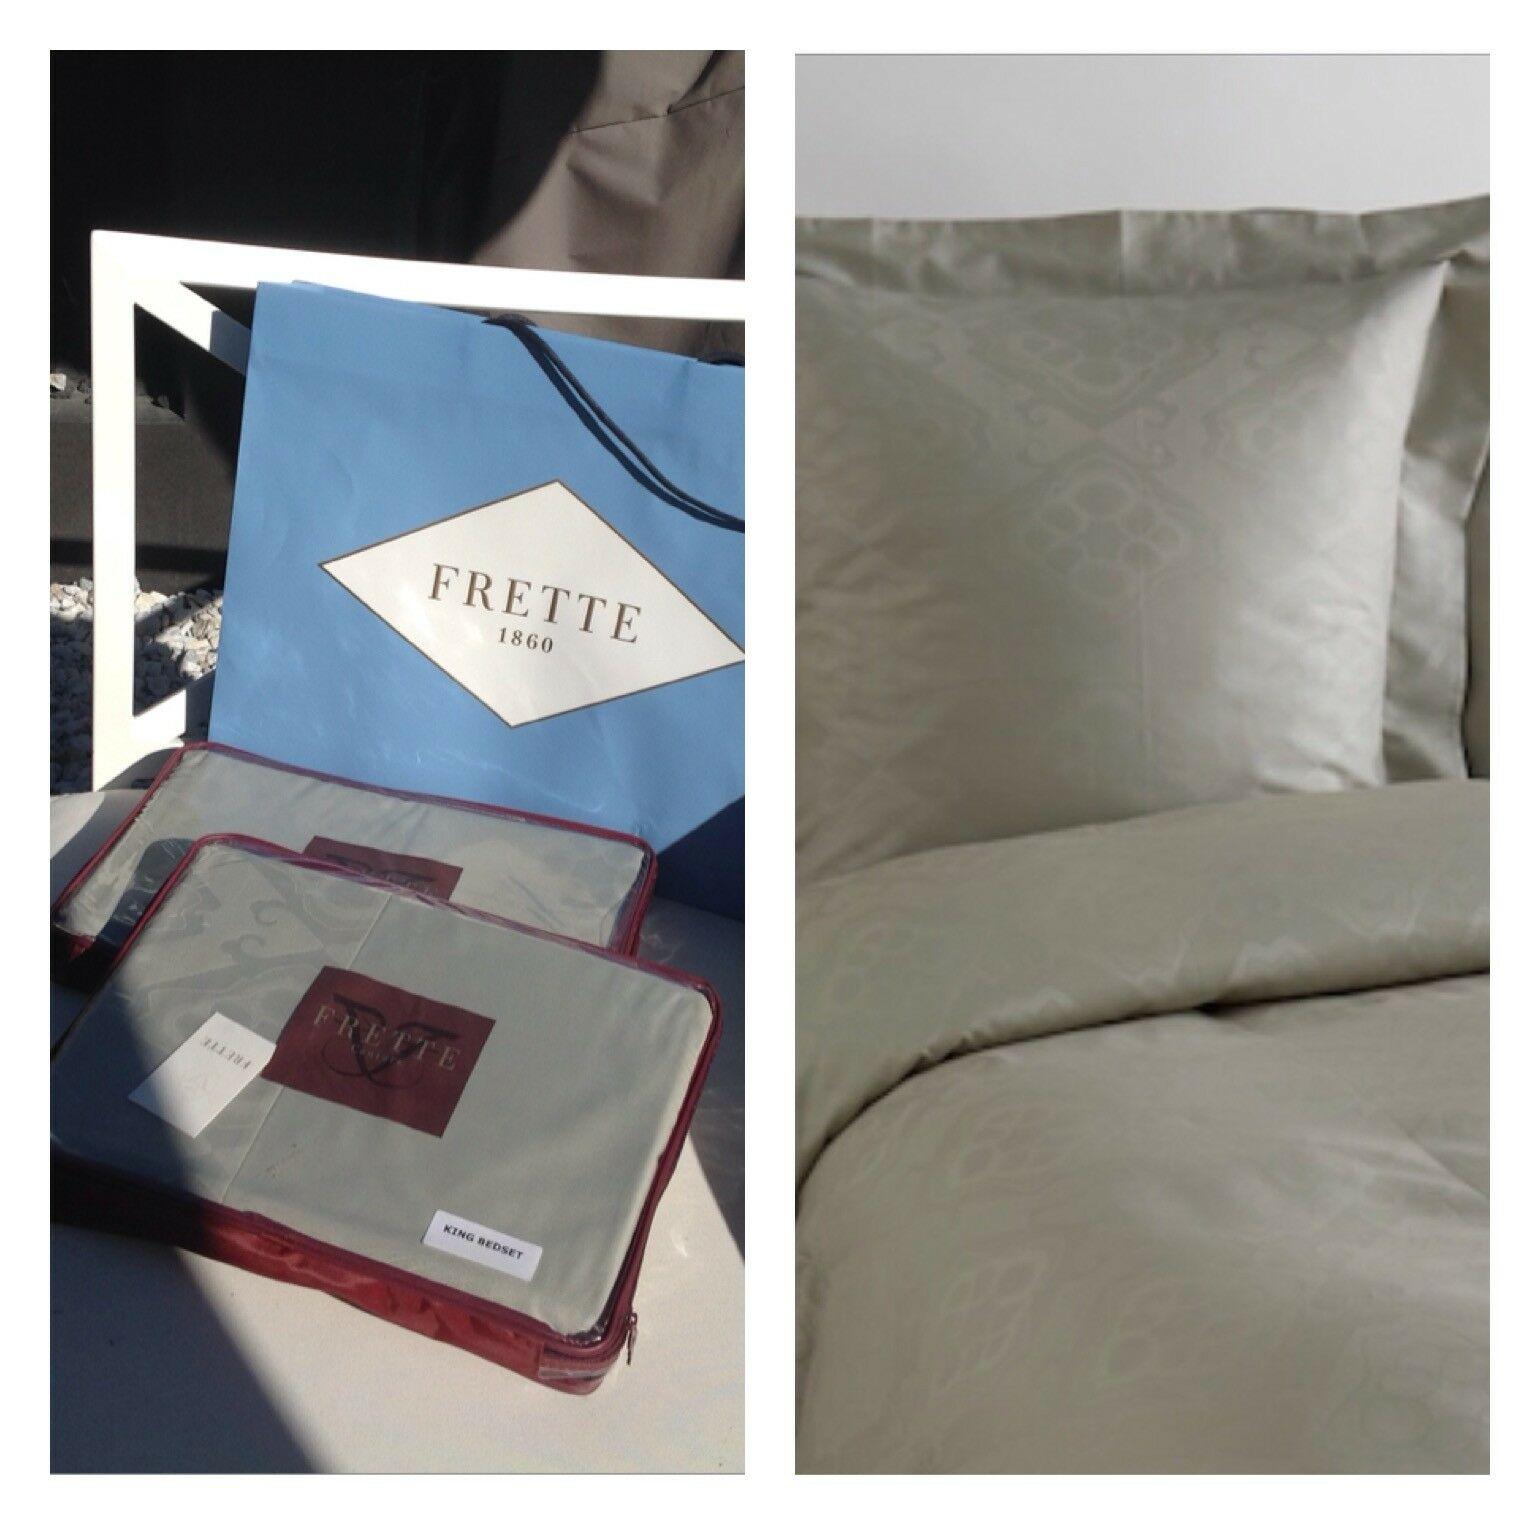 3K FRETTE CAPRILLO BORDER K SHEET SET & KING DUVET-NIP 7 PIECES